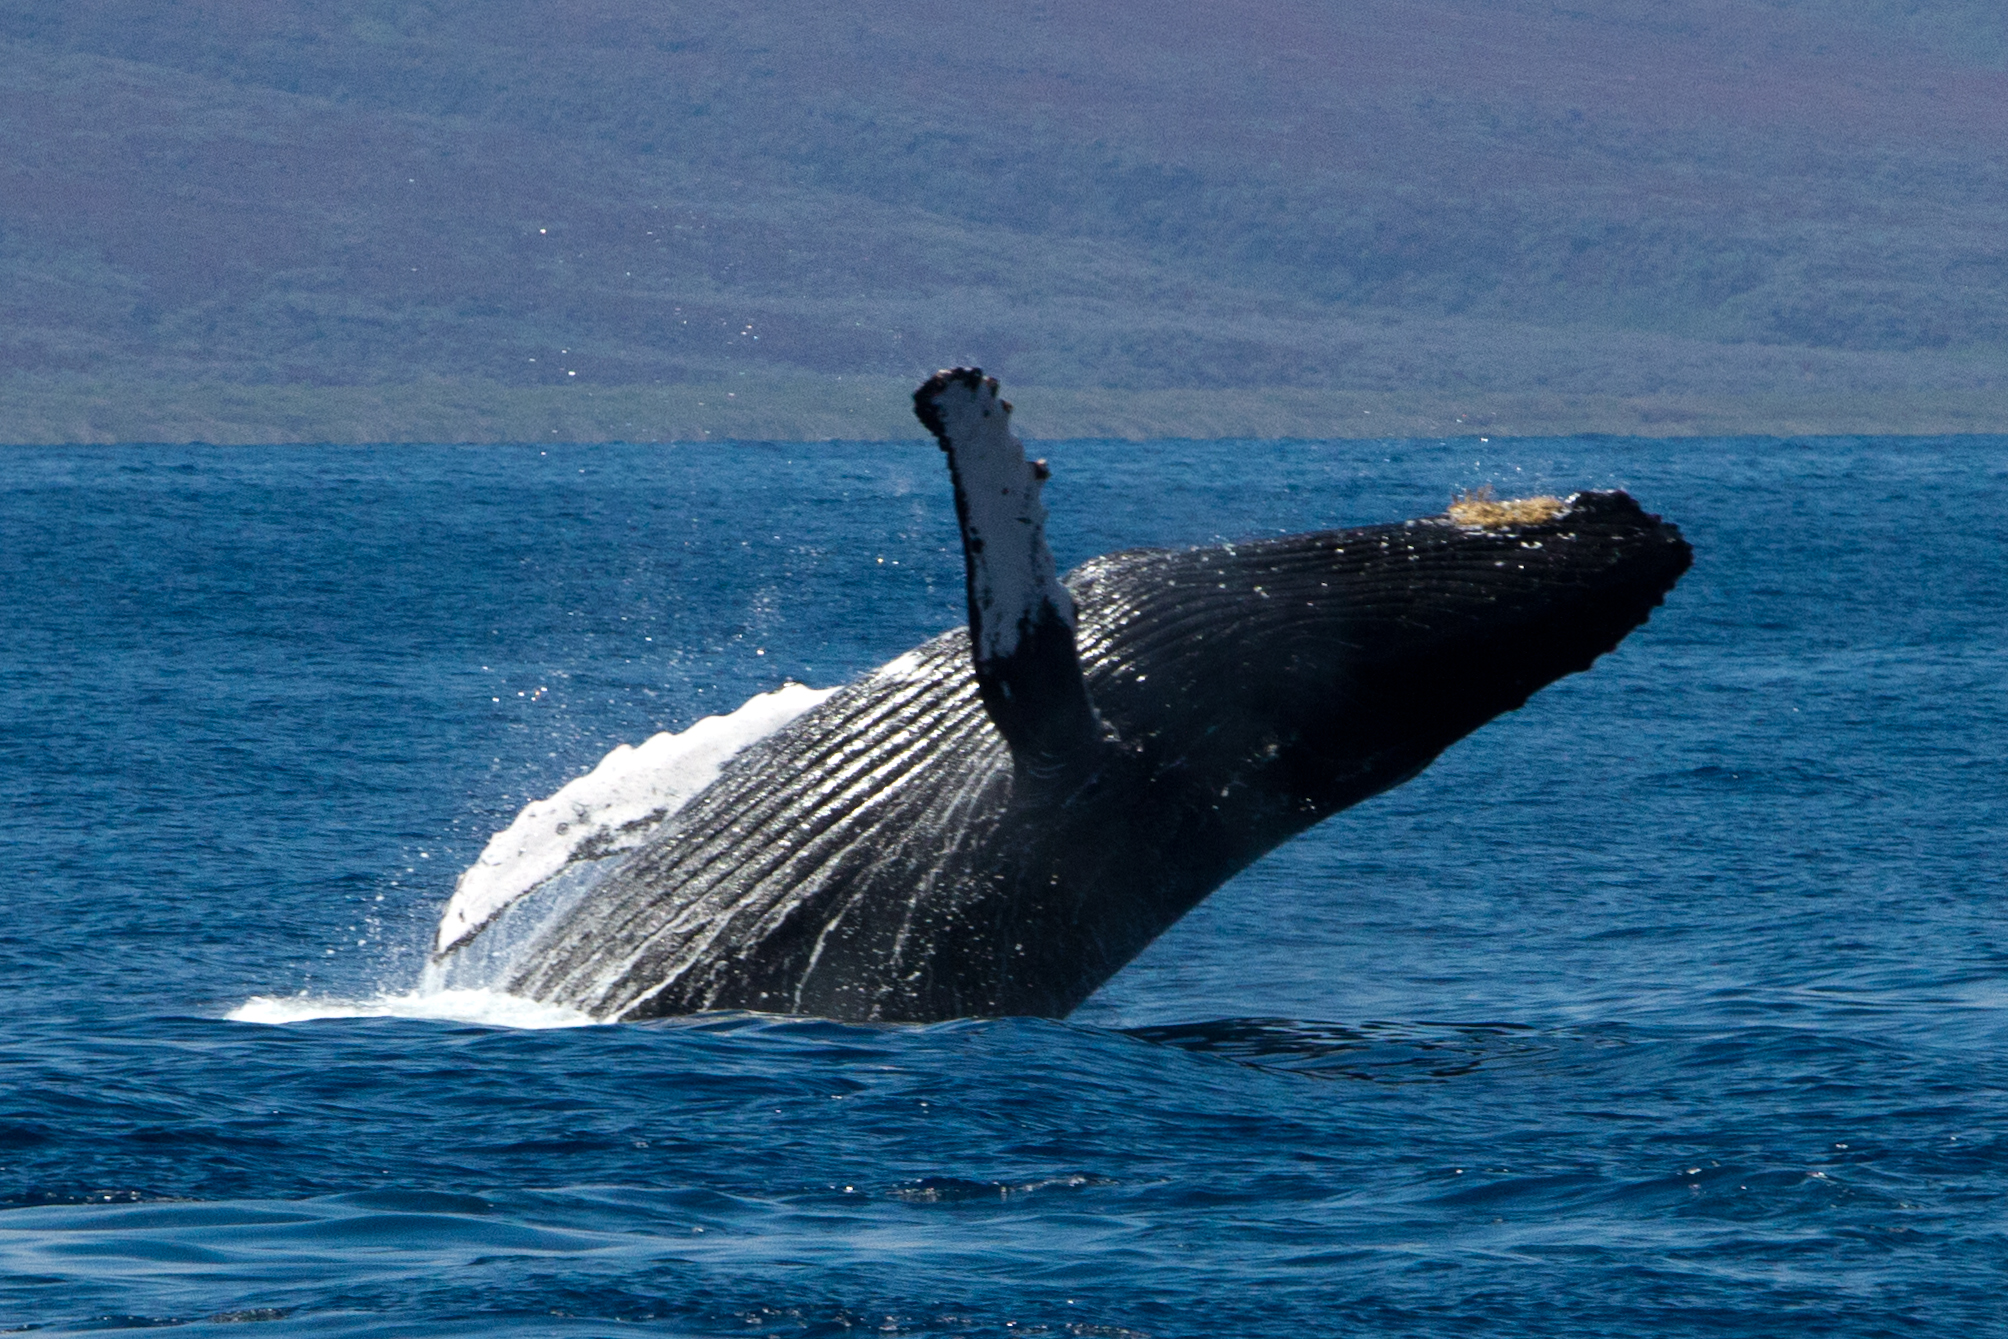 40th Annual Maui Whale Festival Begins Feb. 1